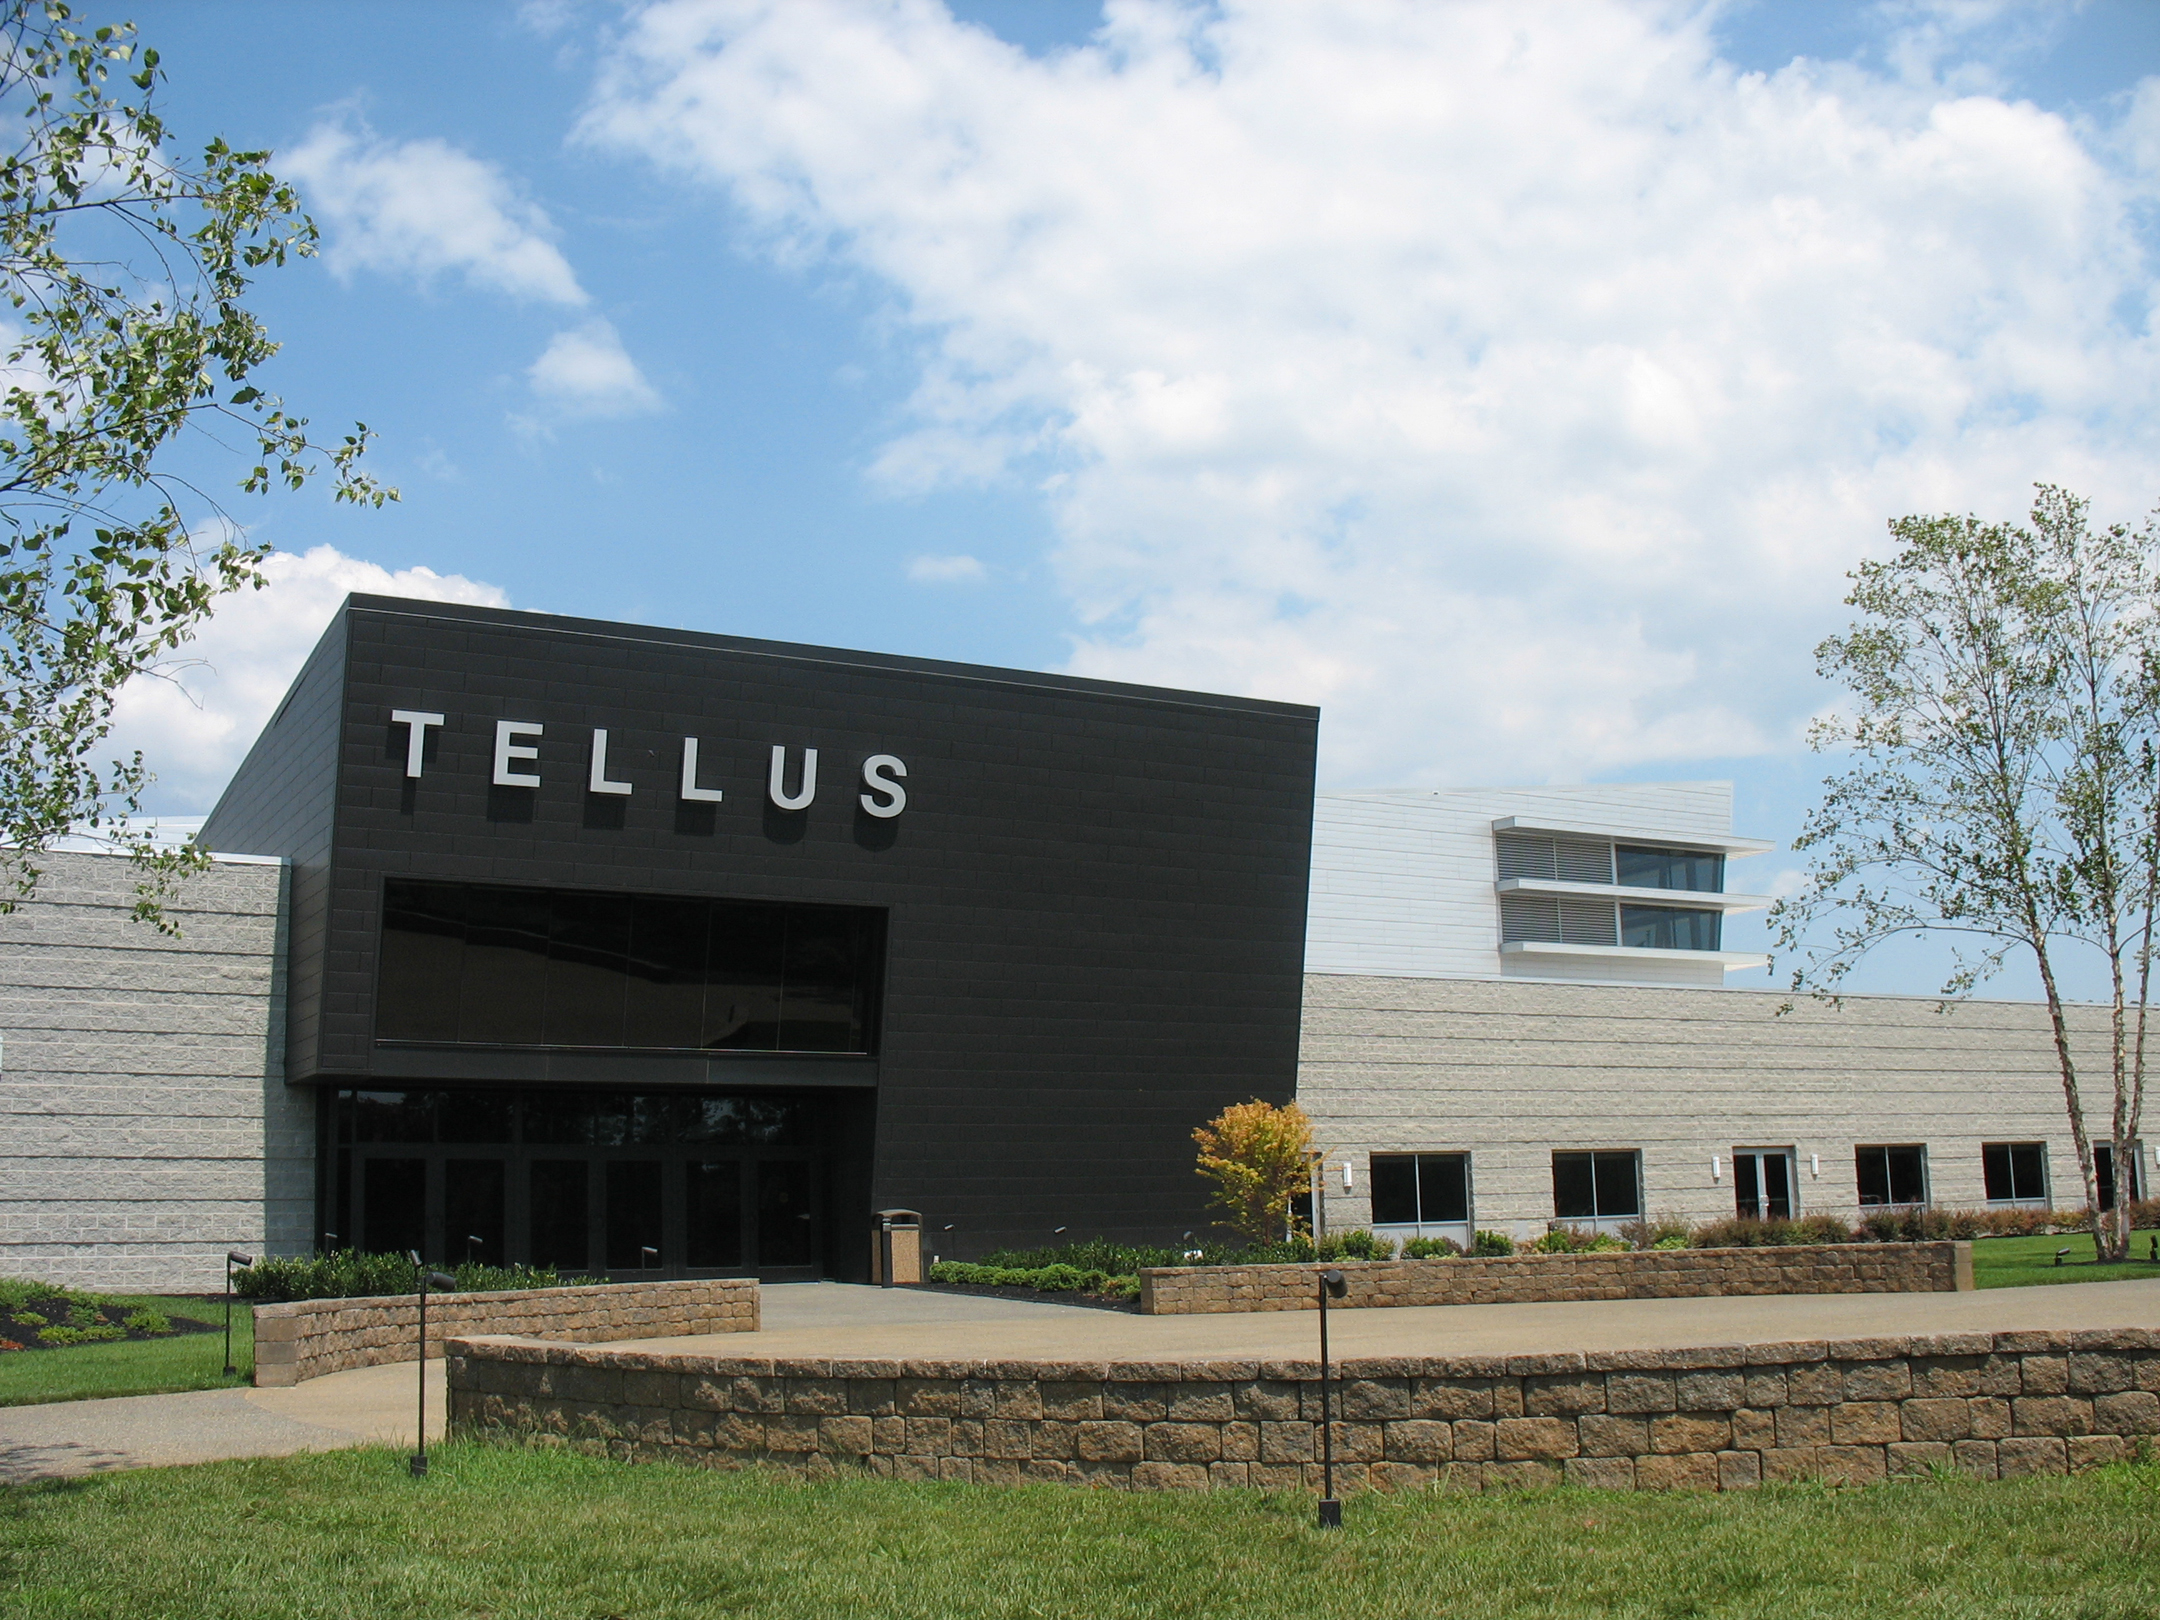 Tellus is 120,000 sq. ft. of science, education and fun.